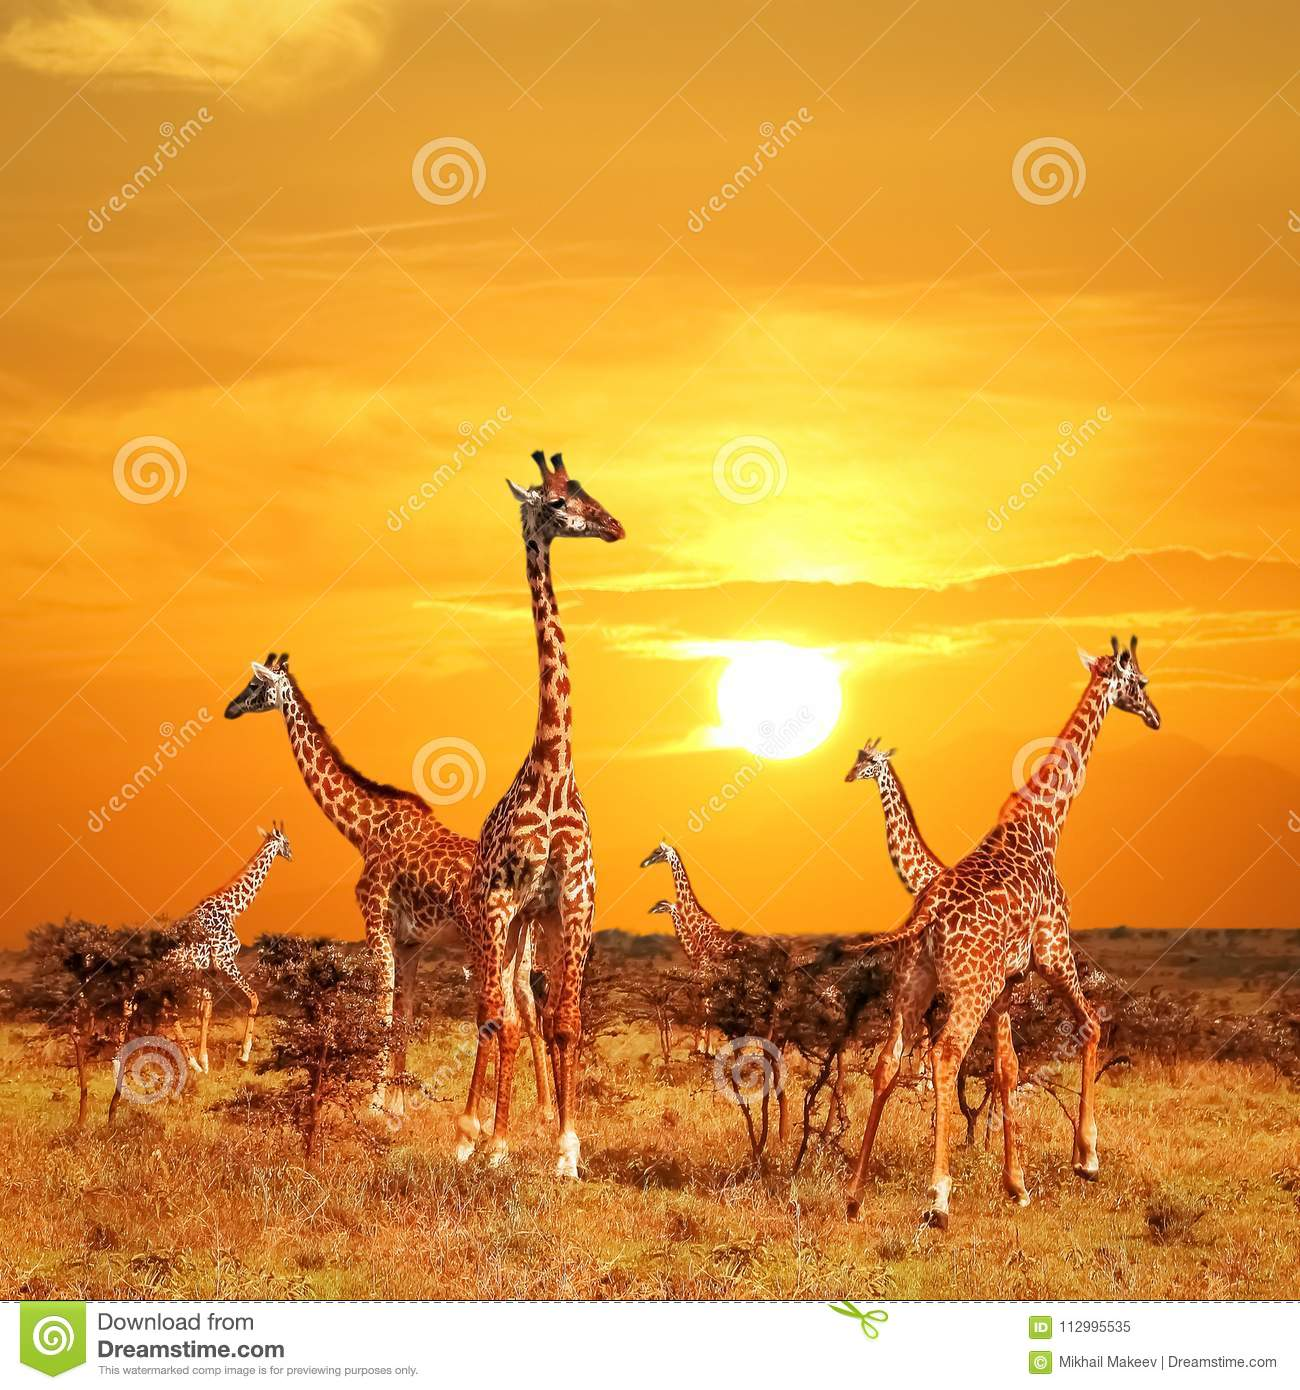 Herd of giraffes in the African savannah against sunset background. Serengeti National Park . Tanzania.